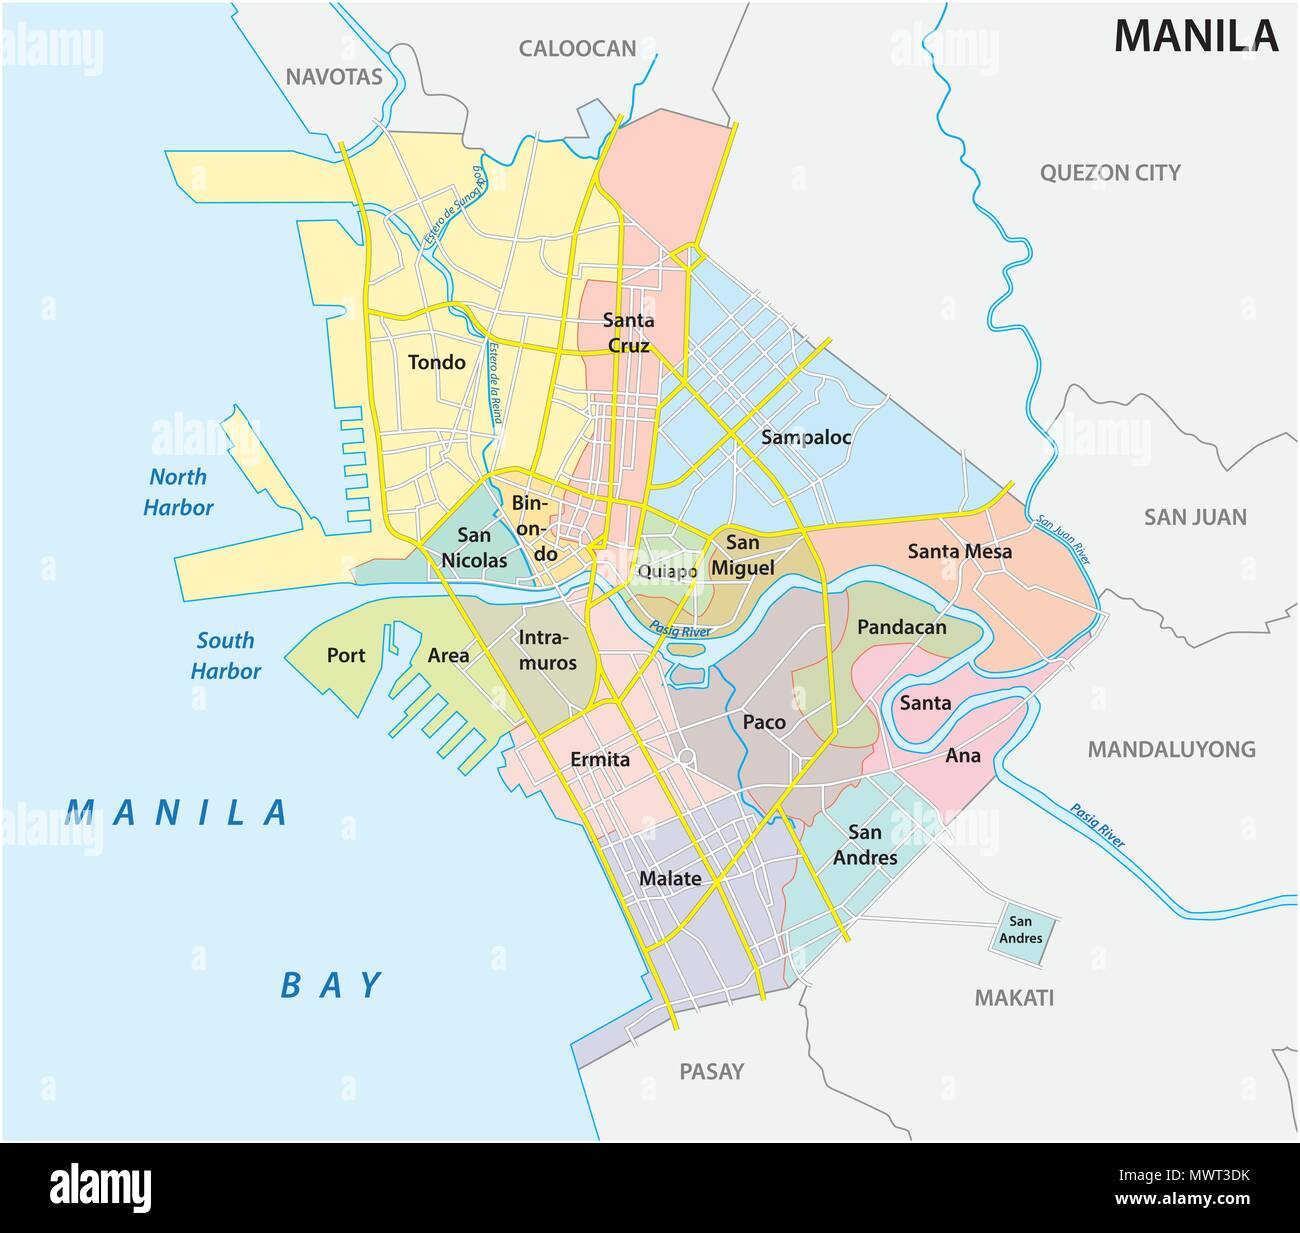 manila administrative, political and road vector map, philippines Stock Vector